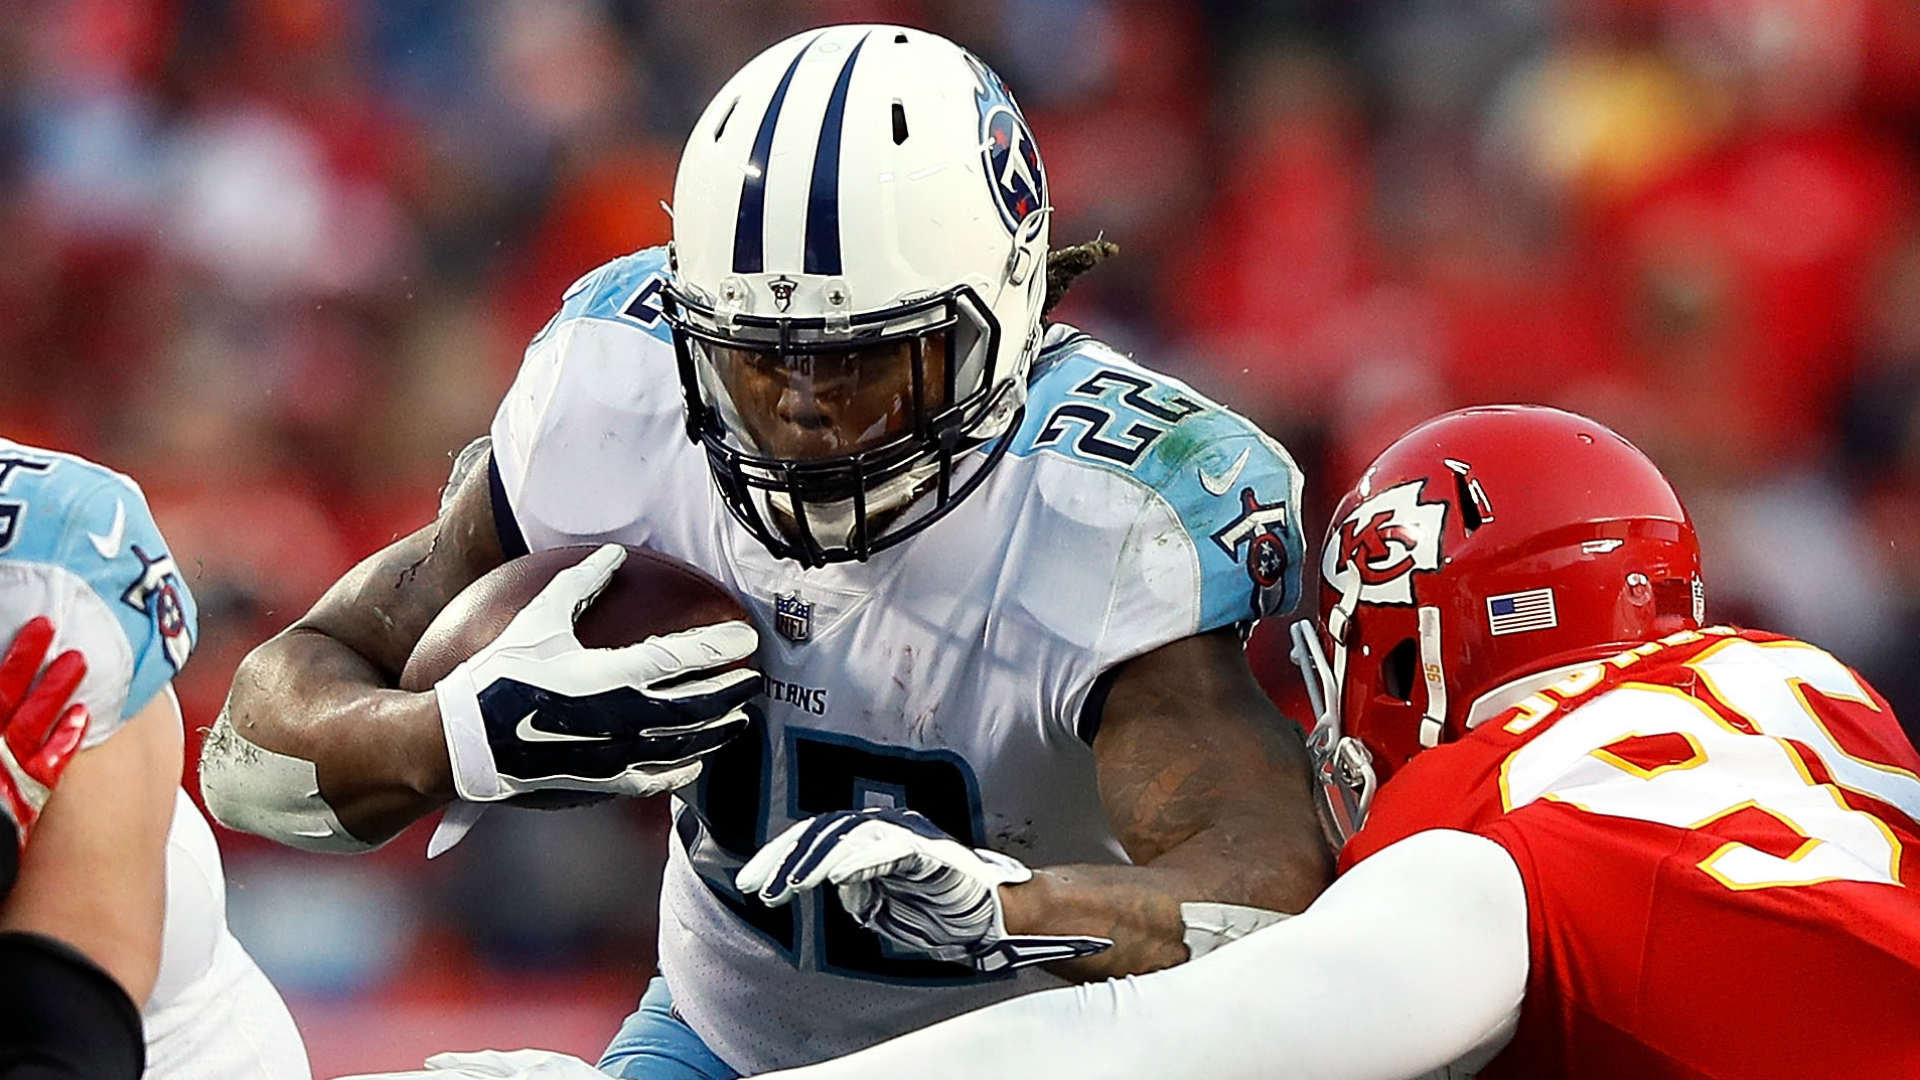 DeMarco Murray (knee) officially out Saturday for Titans